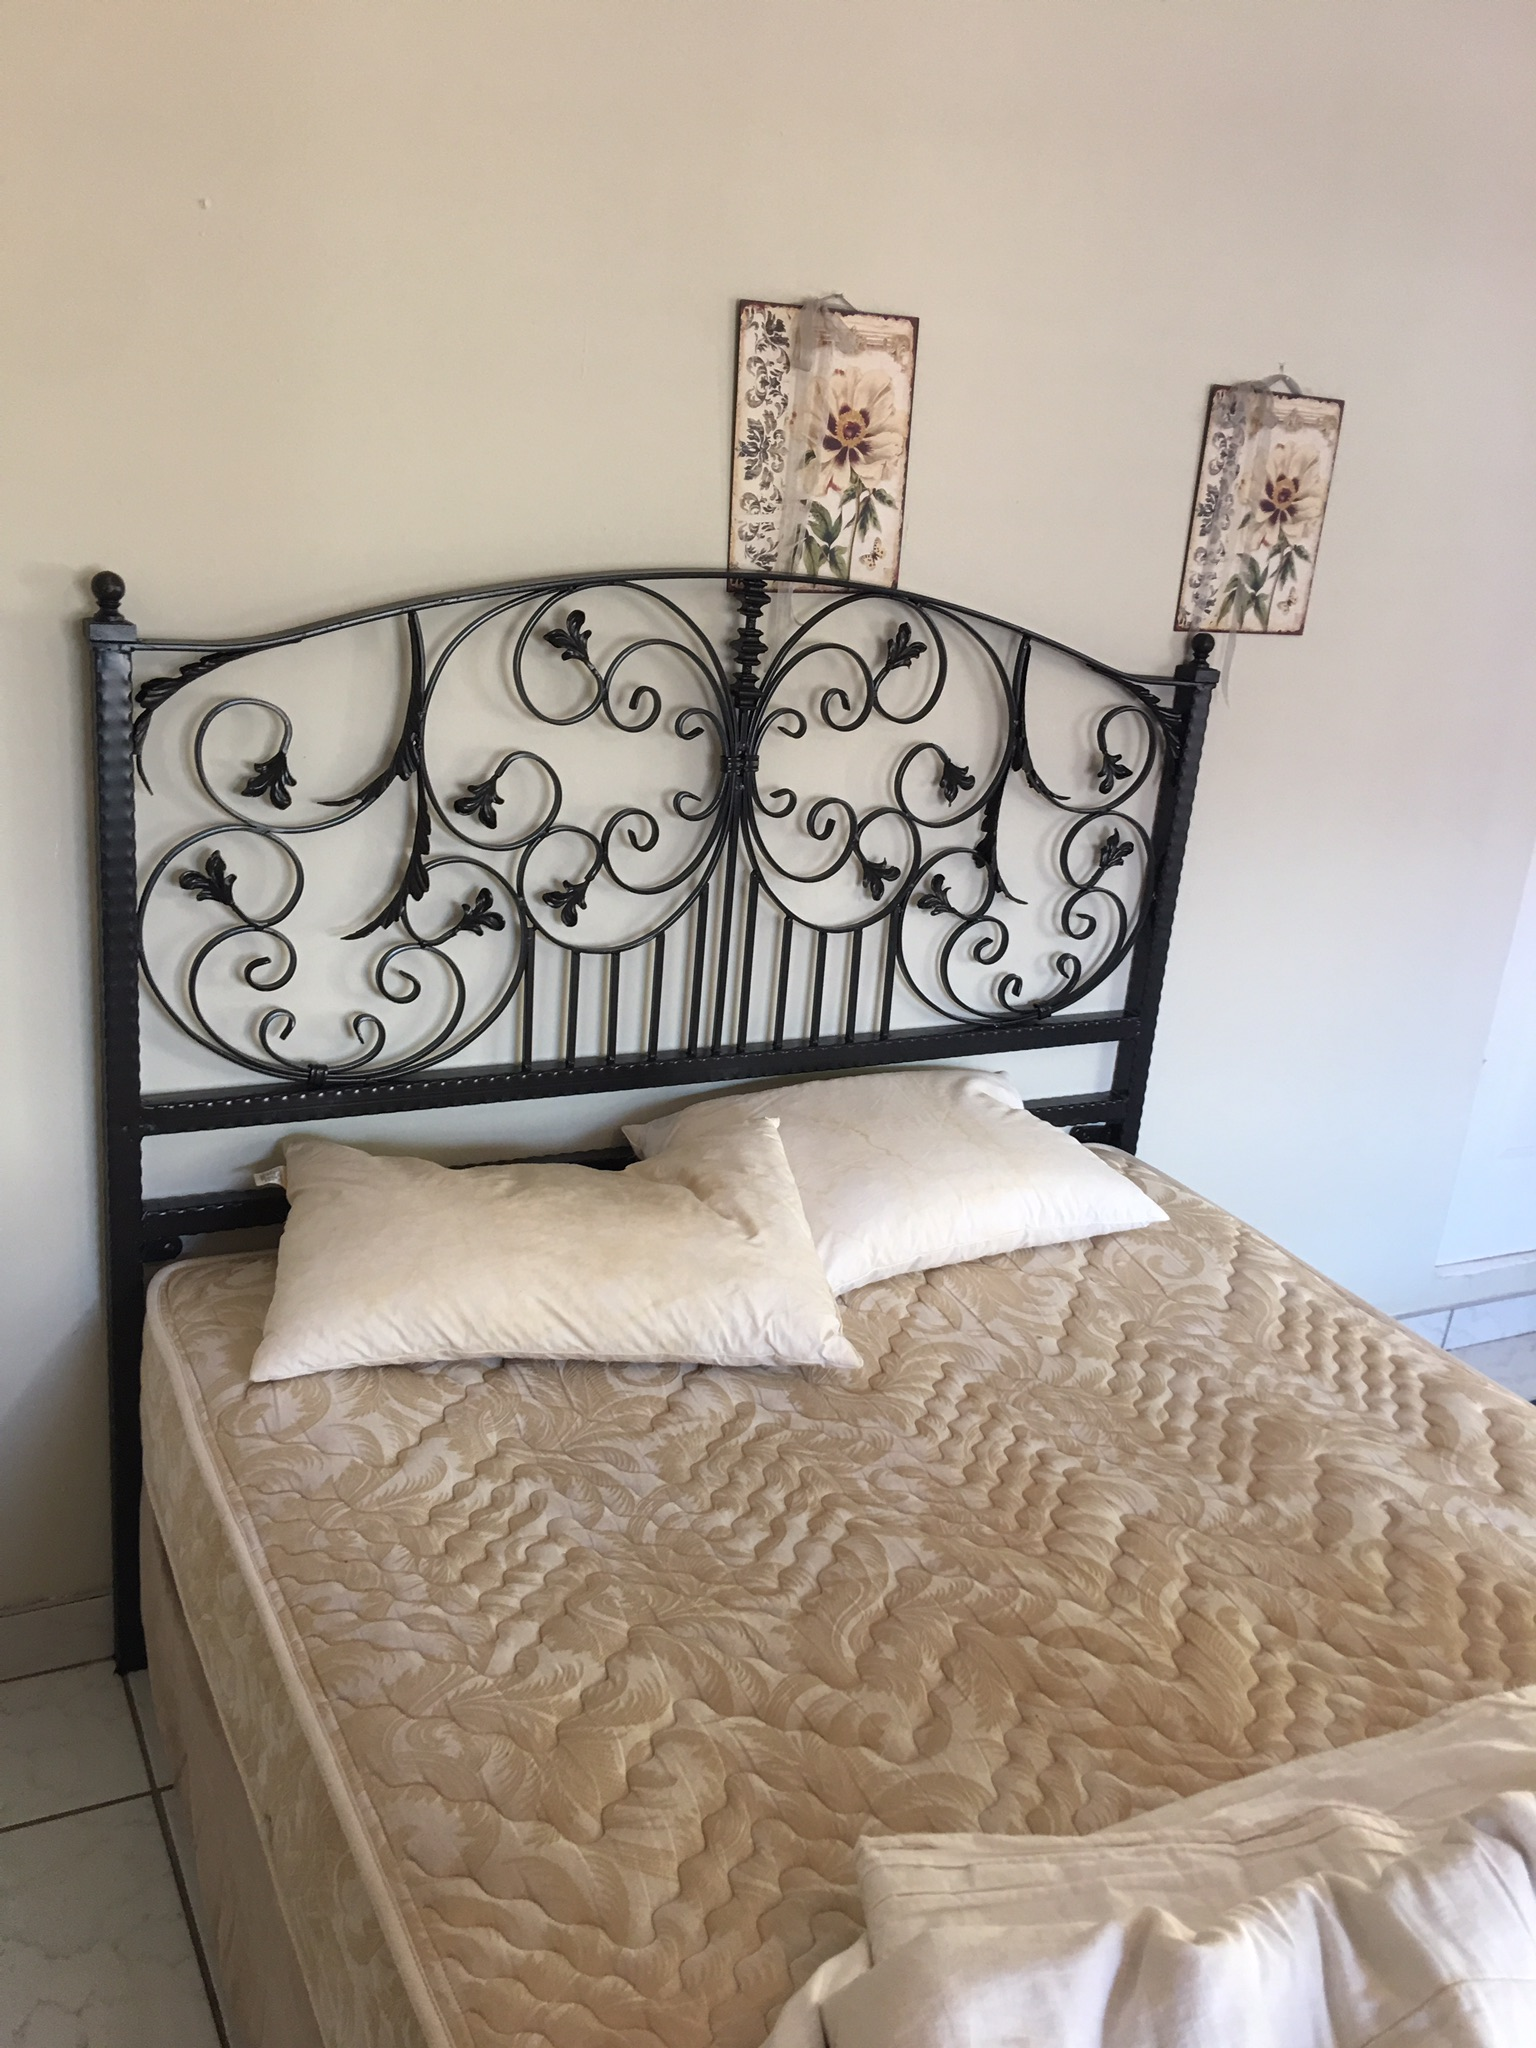 Wrought Iron Headboard For A Double Bed Amazing Gates